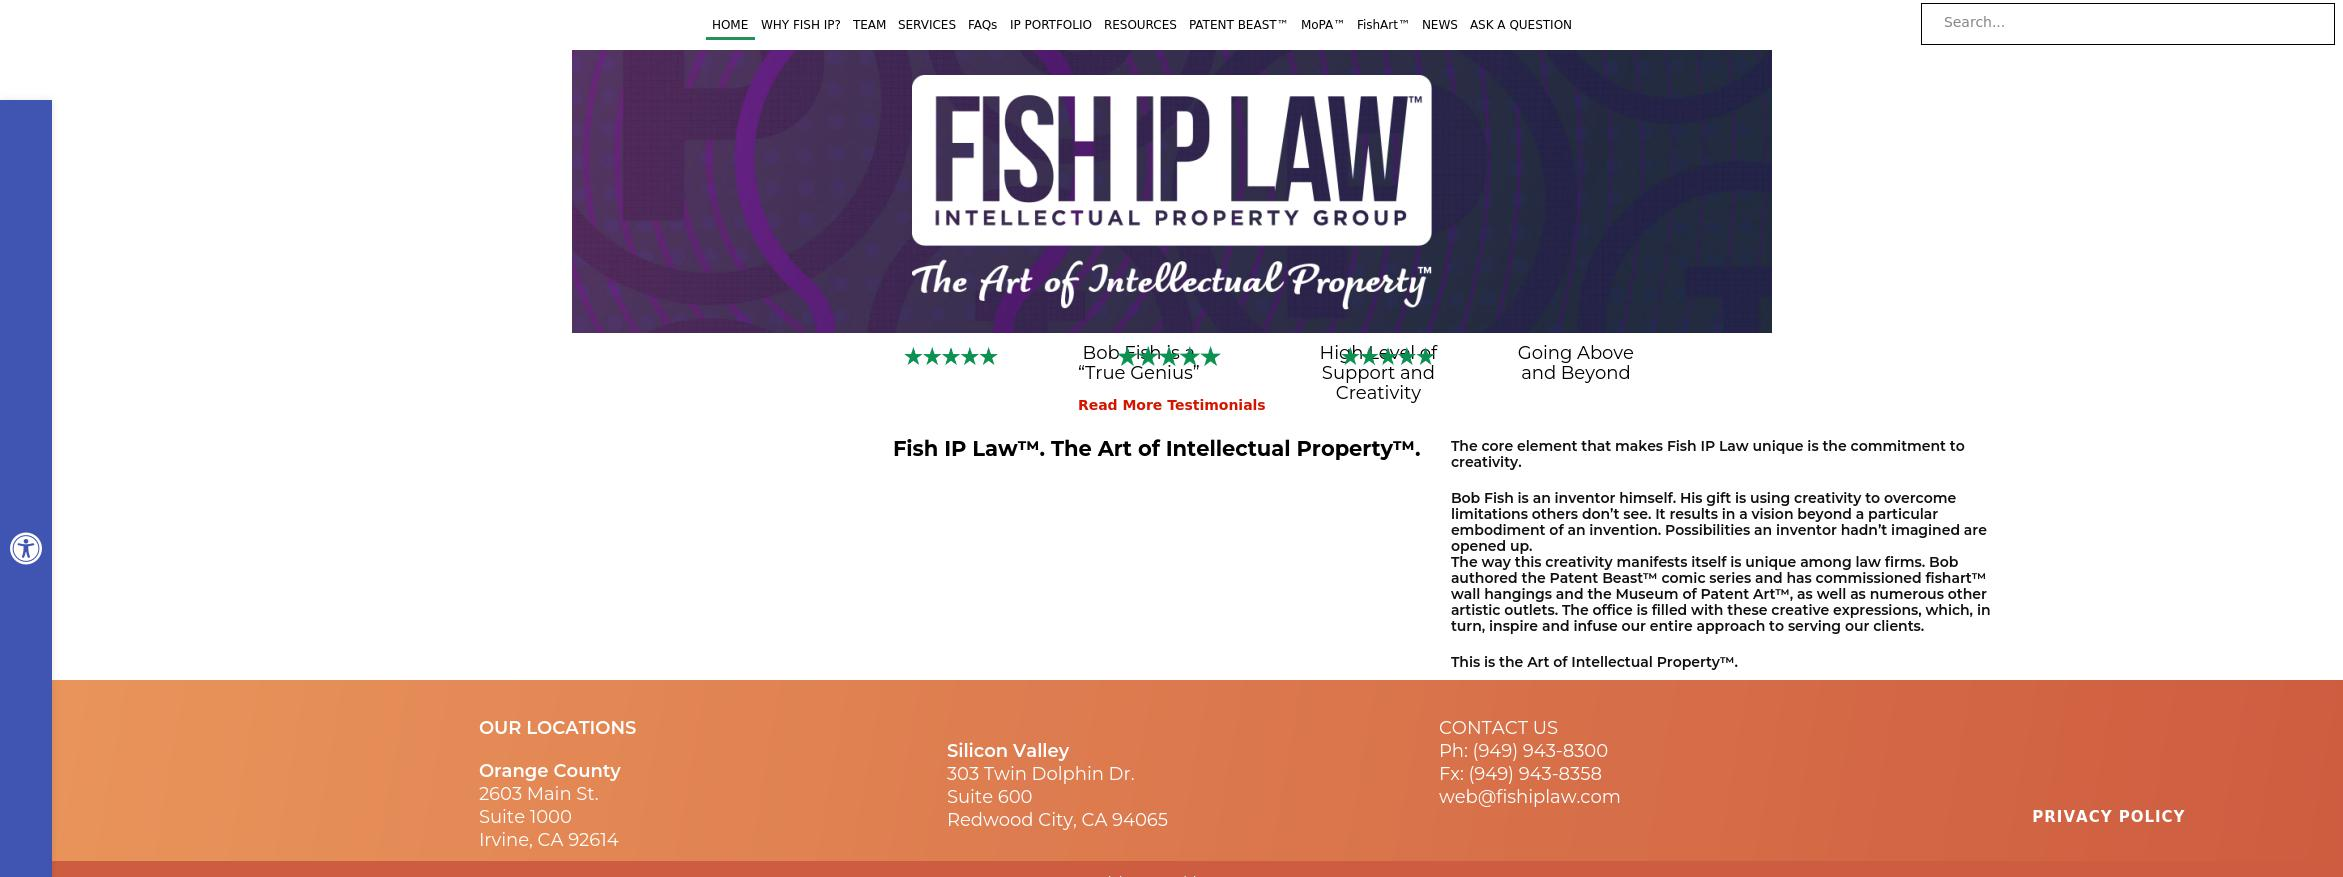 Fish & Tsang LLP - Redwood City CA Lawyers